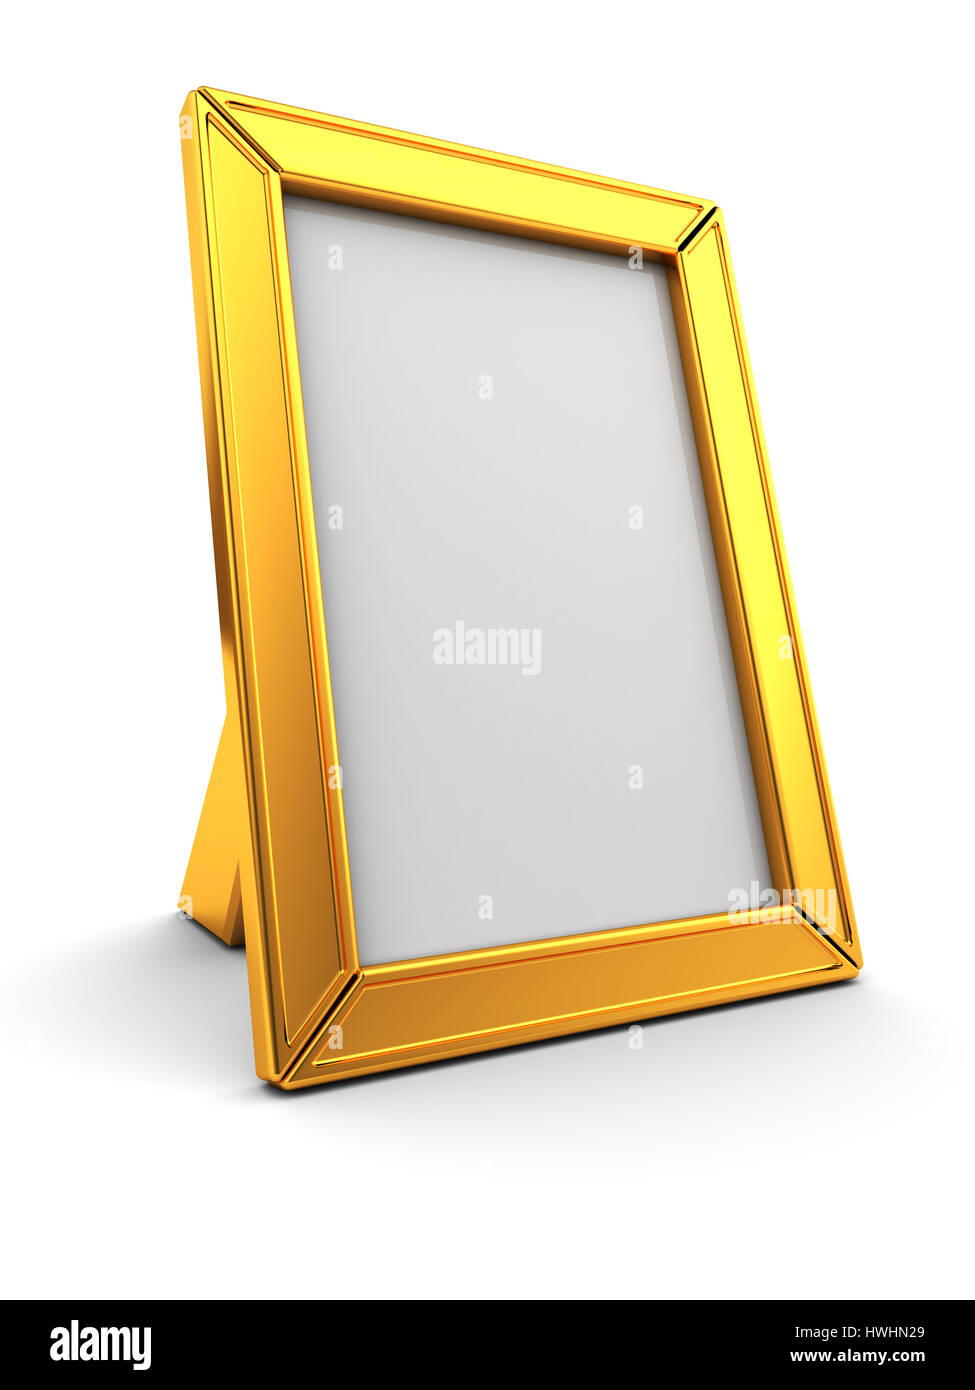 3d Golden Photo Frame Stock Photos & 3d Golden Photo Frame Stock ...